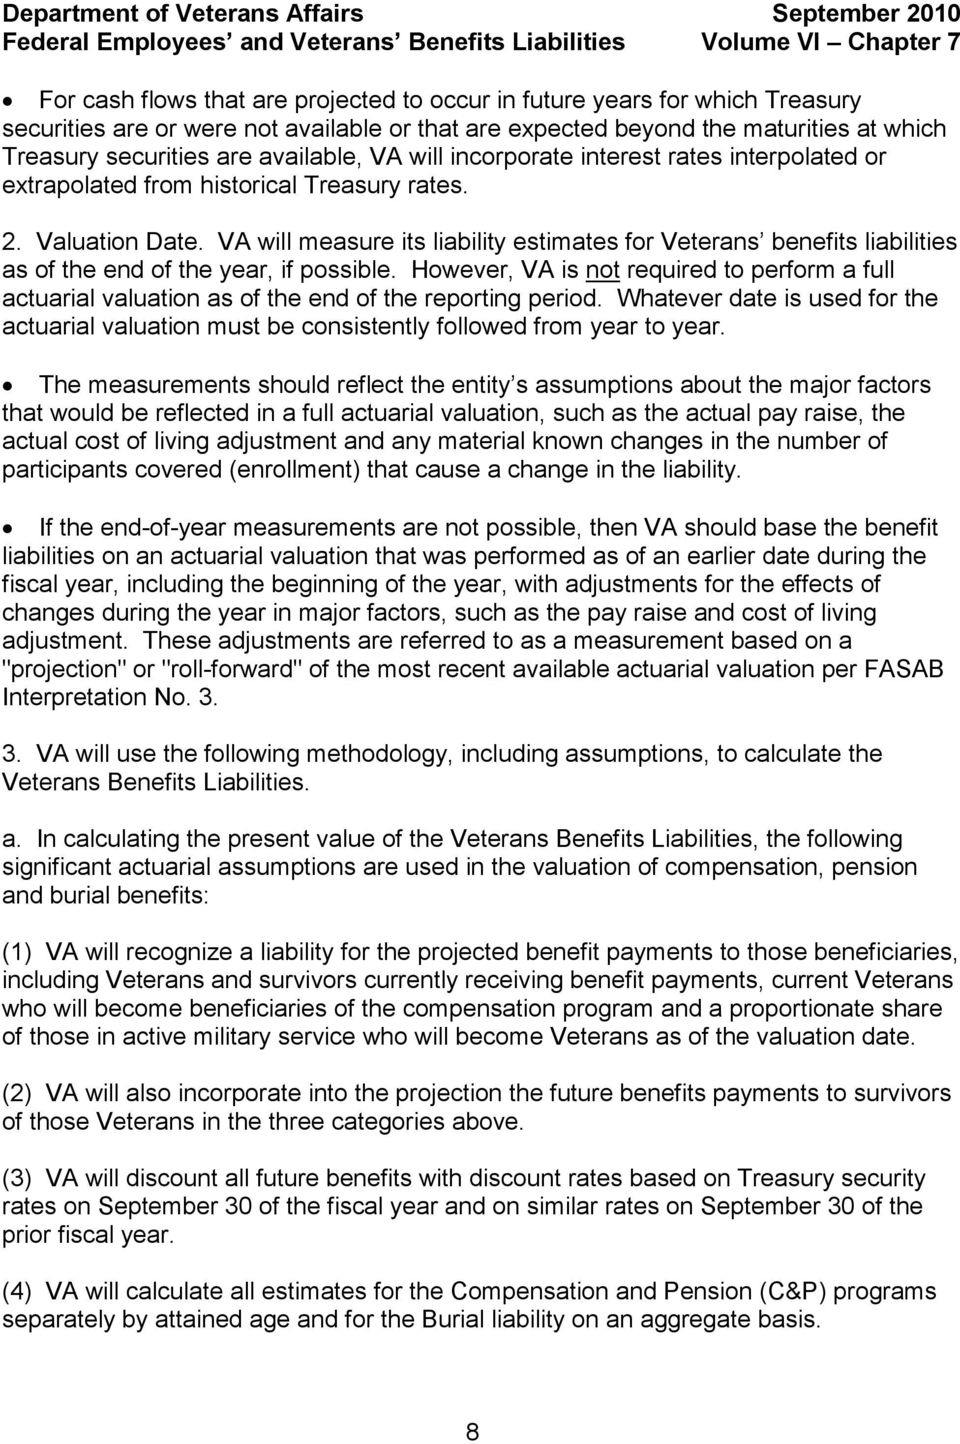 VA will measure its liability estimates for Veterans benefits liabilities as of the end of the year, if possible.